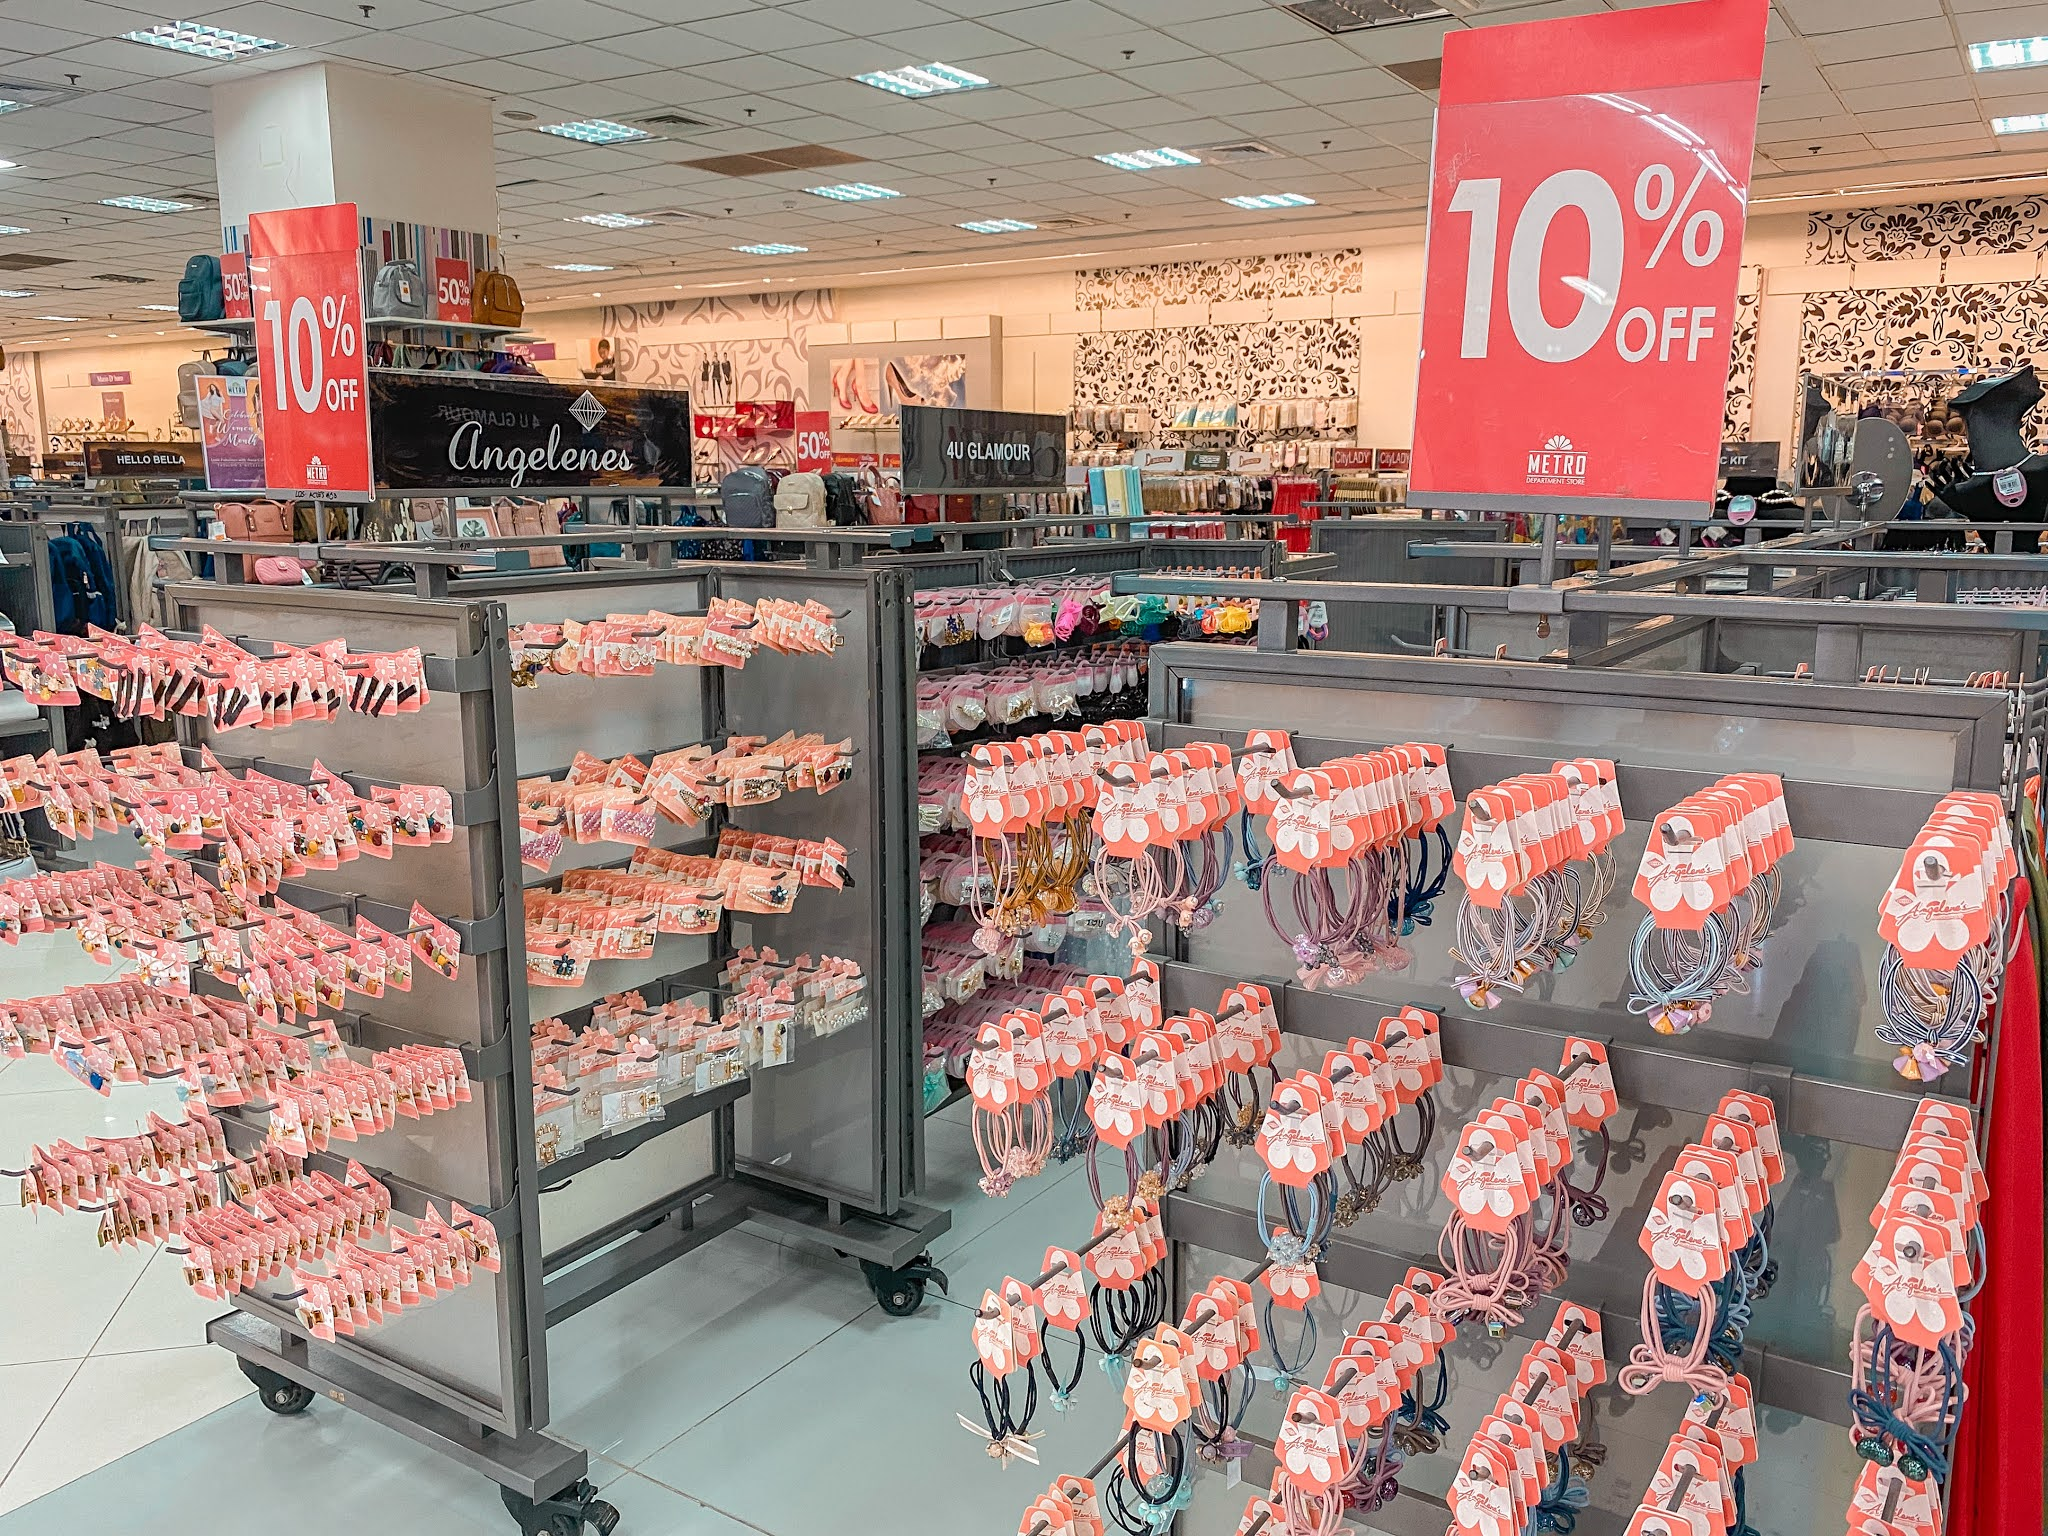 The Metro Stores 7-Day Sidewalk Sale on March 15-21, 2021